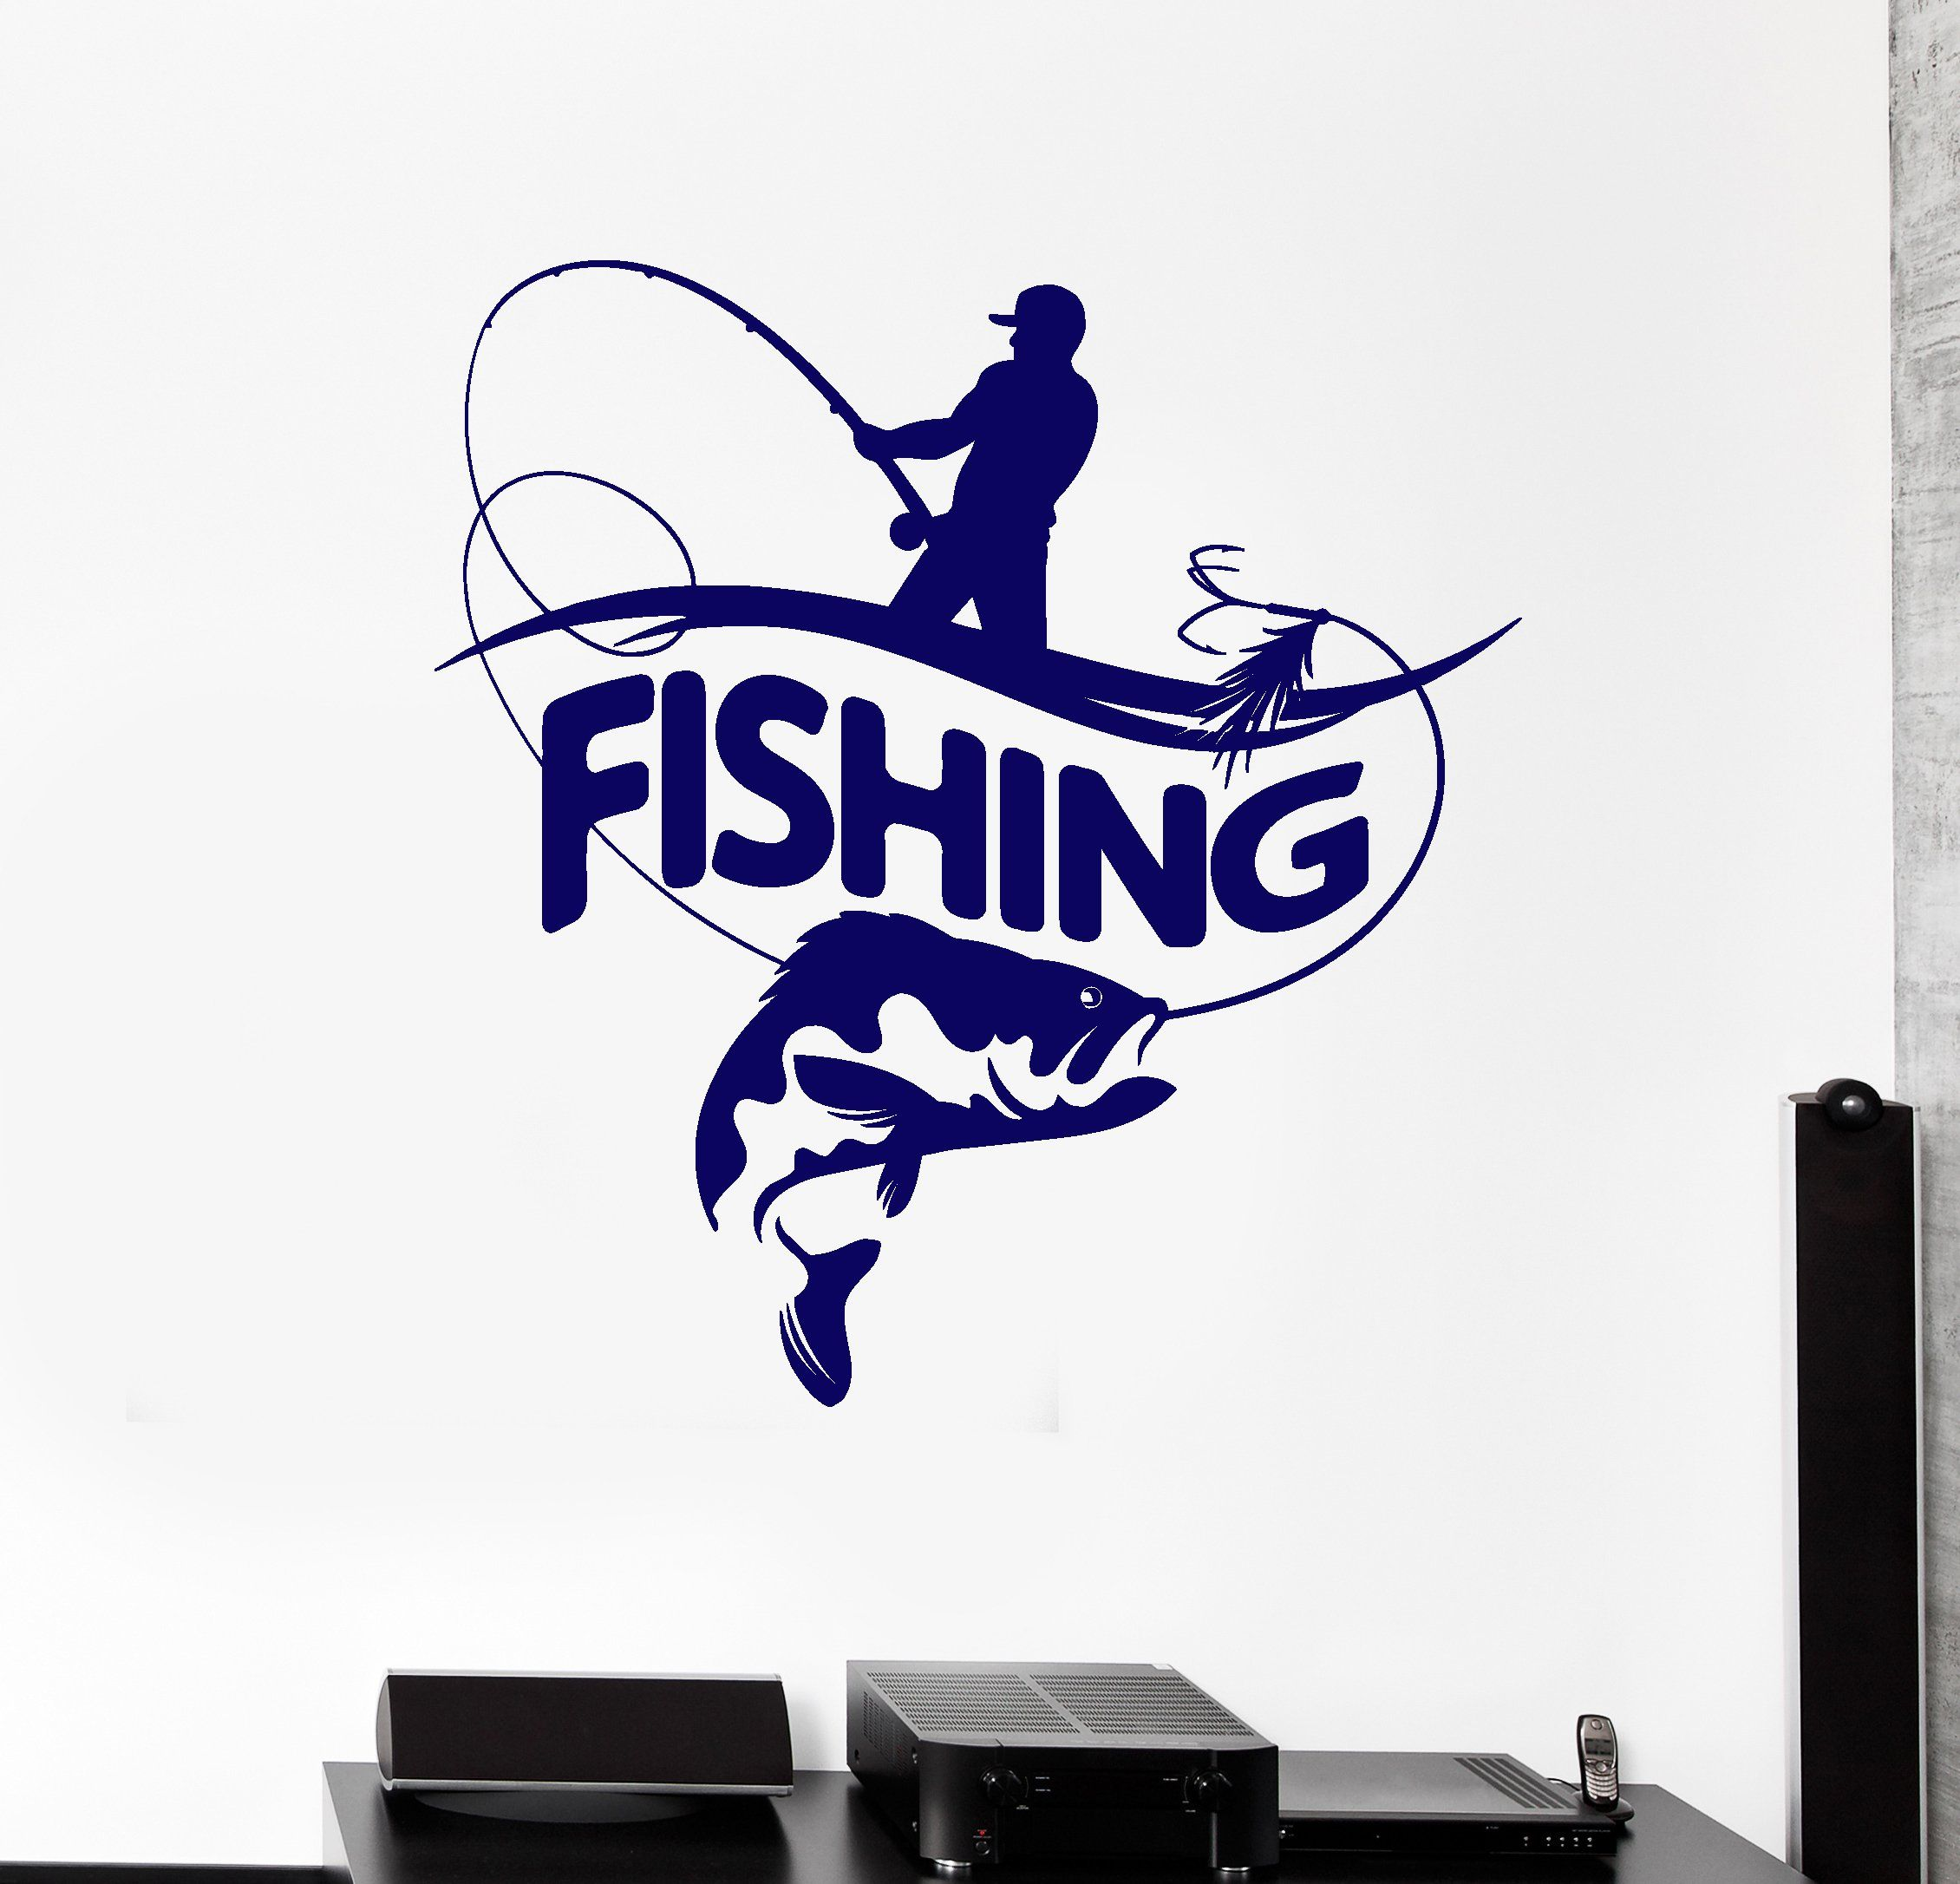 24 Fishing DECALS vinyl STICKER lure reel rod hook tackle box tug canoe boat fly